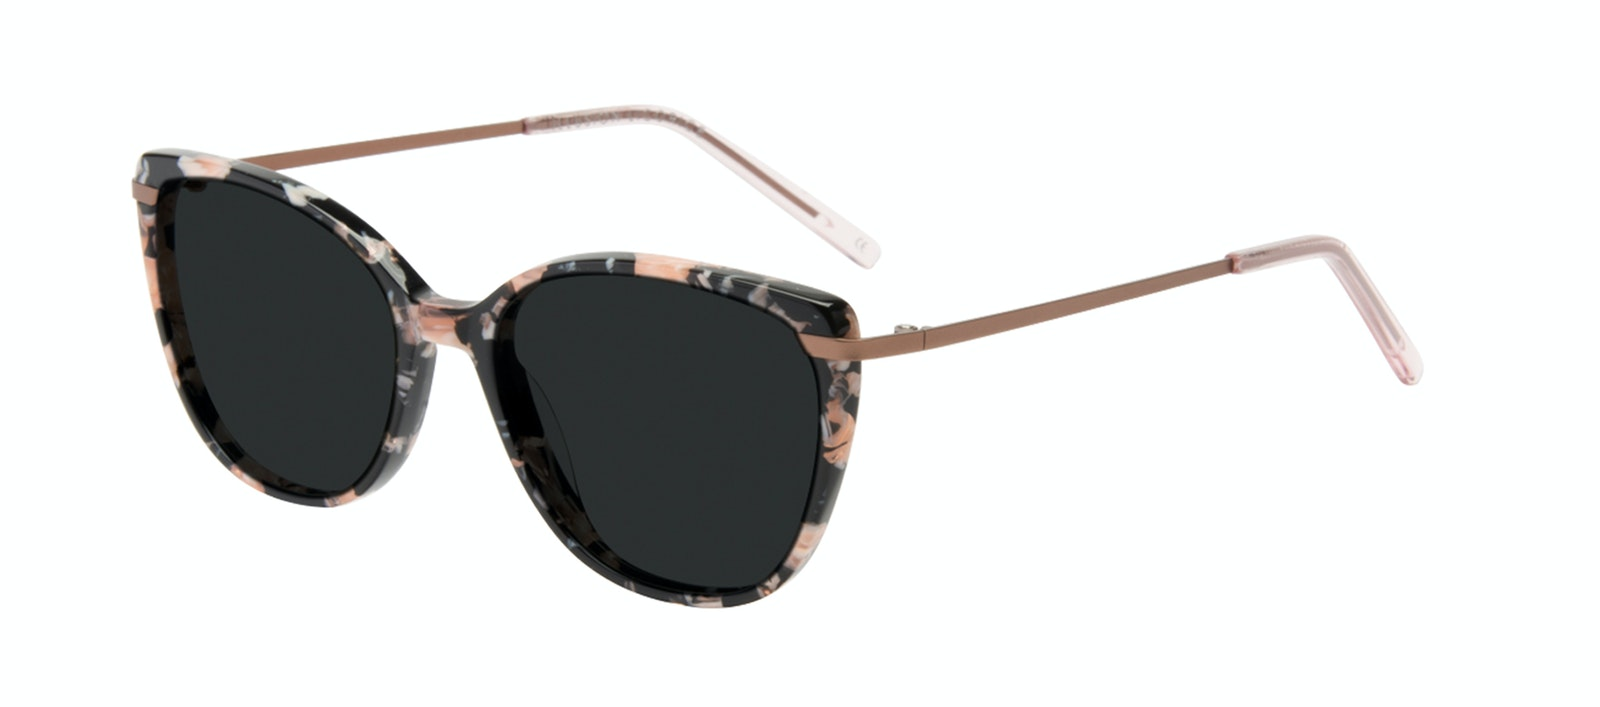 Affordable Fashion Glasses Rectangle Square Sunglasses Women Illusion Licorice Tilt